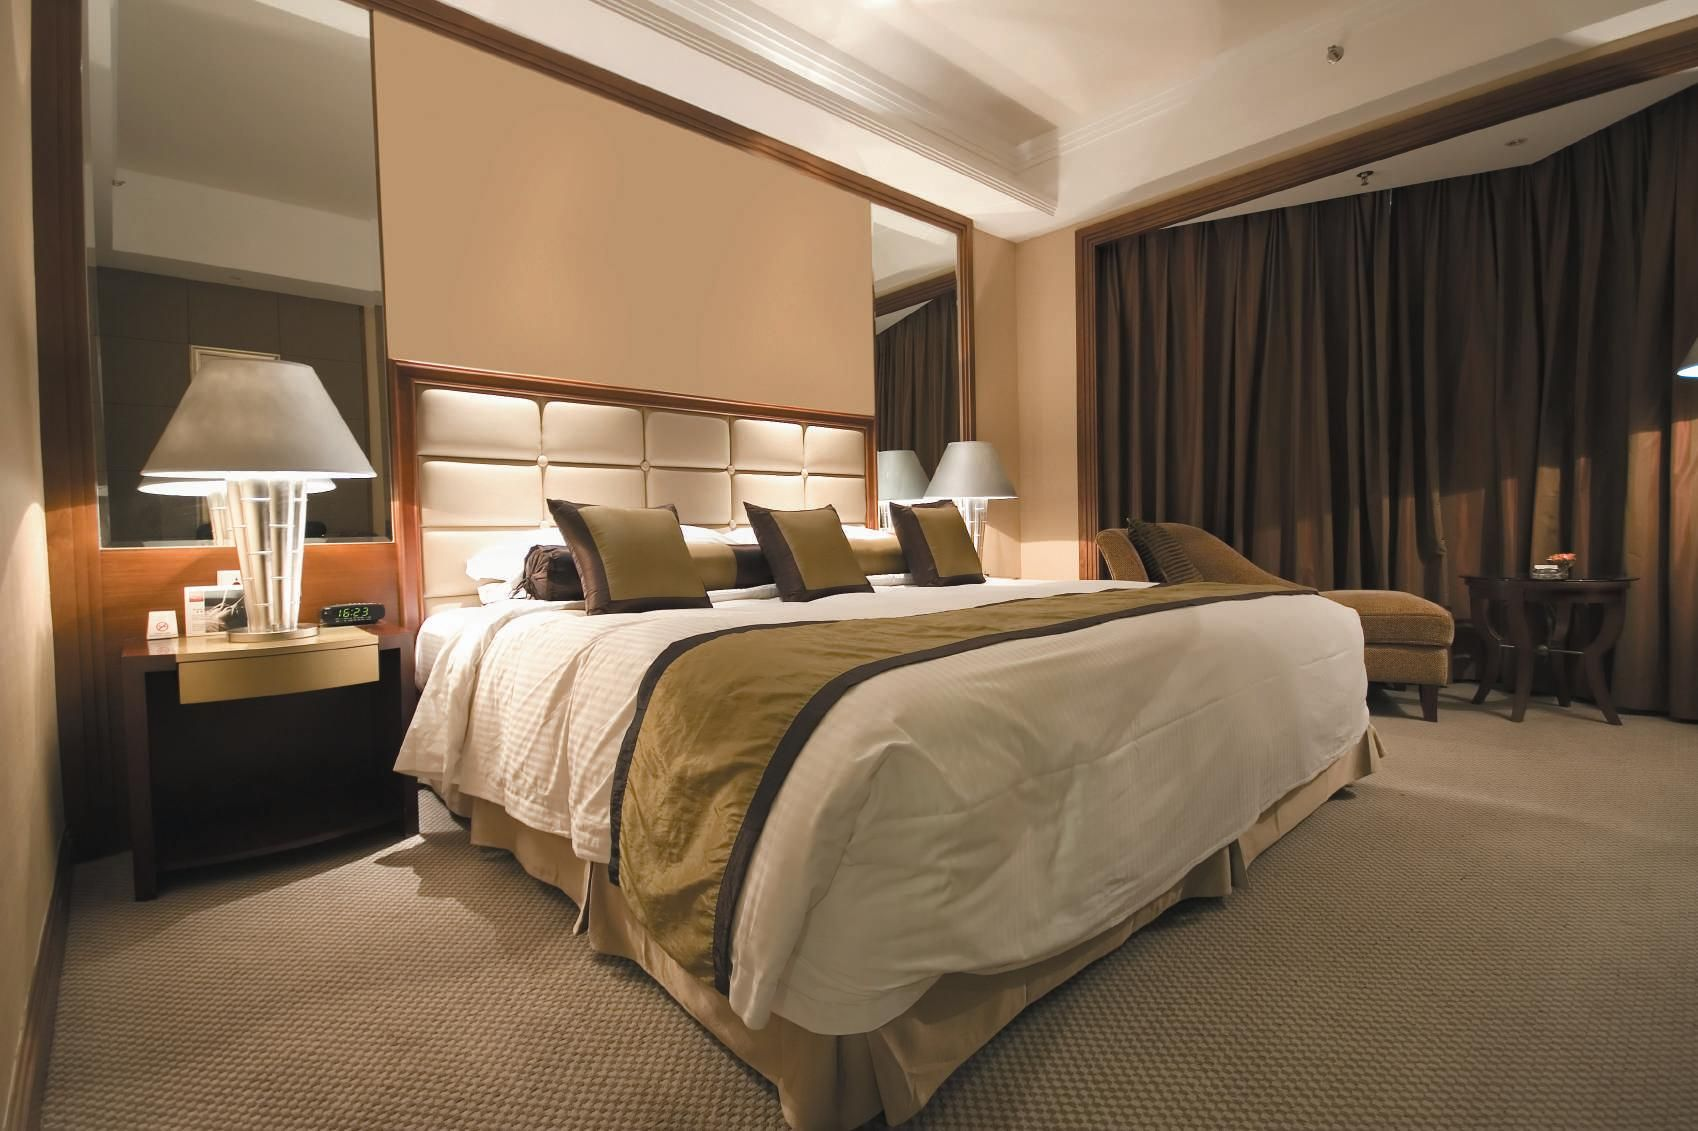 Interactive Bedroom Design Selecting The Perfect Living Room Sofa Design Httpwww